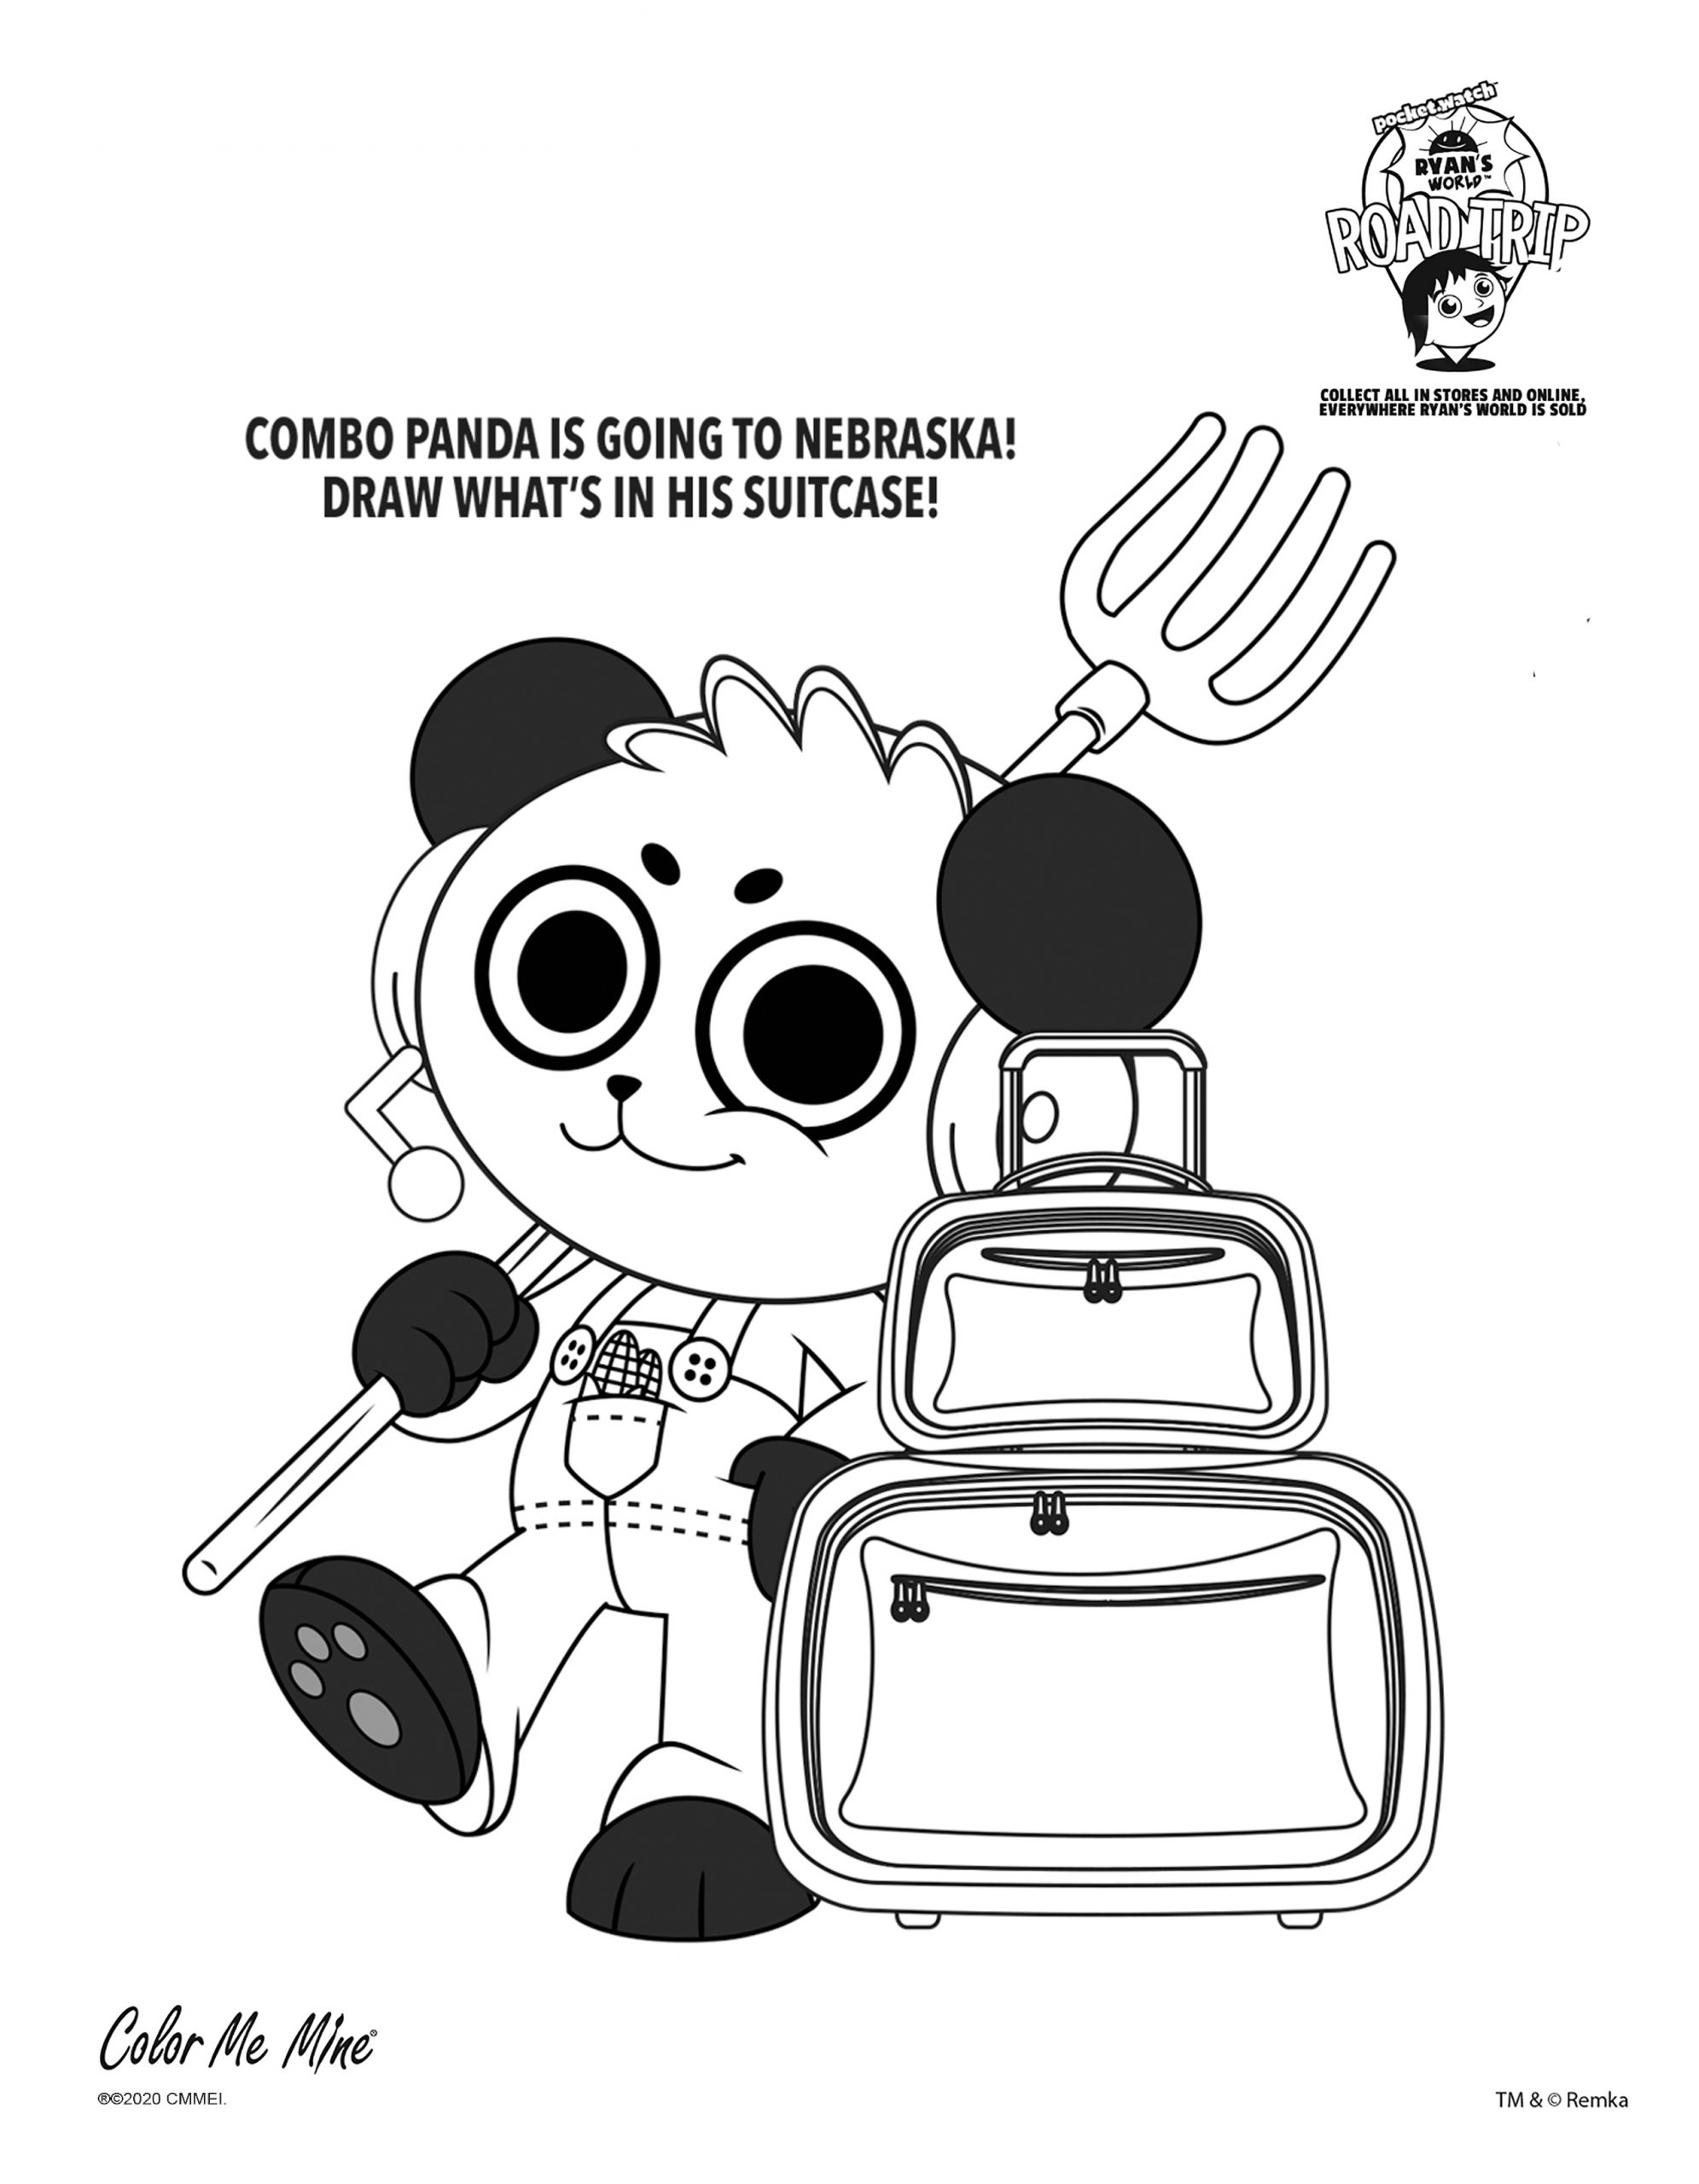 Ryan Coloring Pages : coloring, pages, Ryan's, World, Coloring, Pages, Moms.com